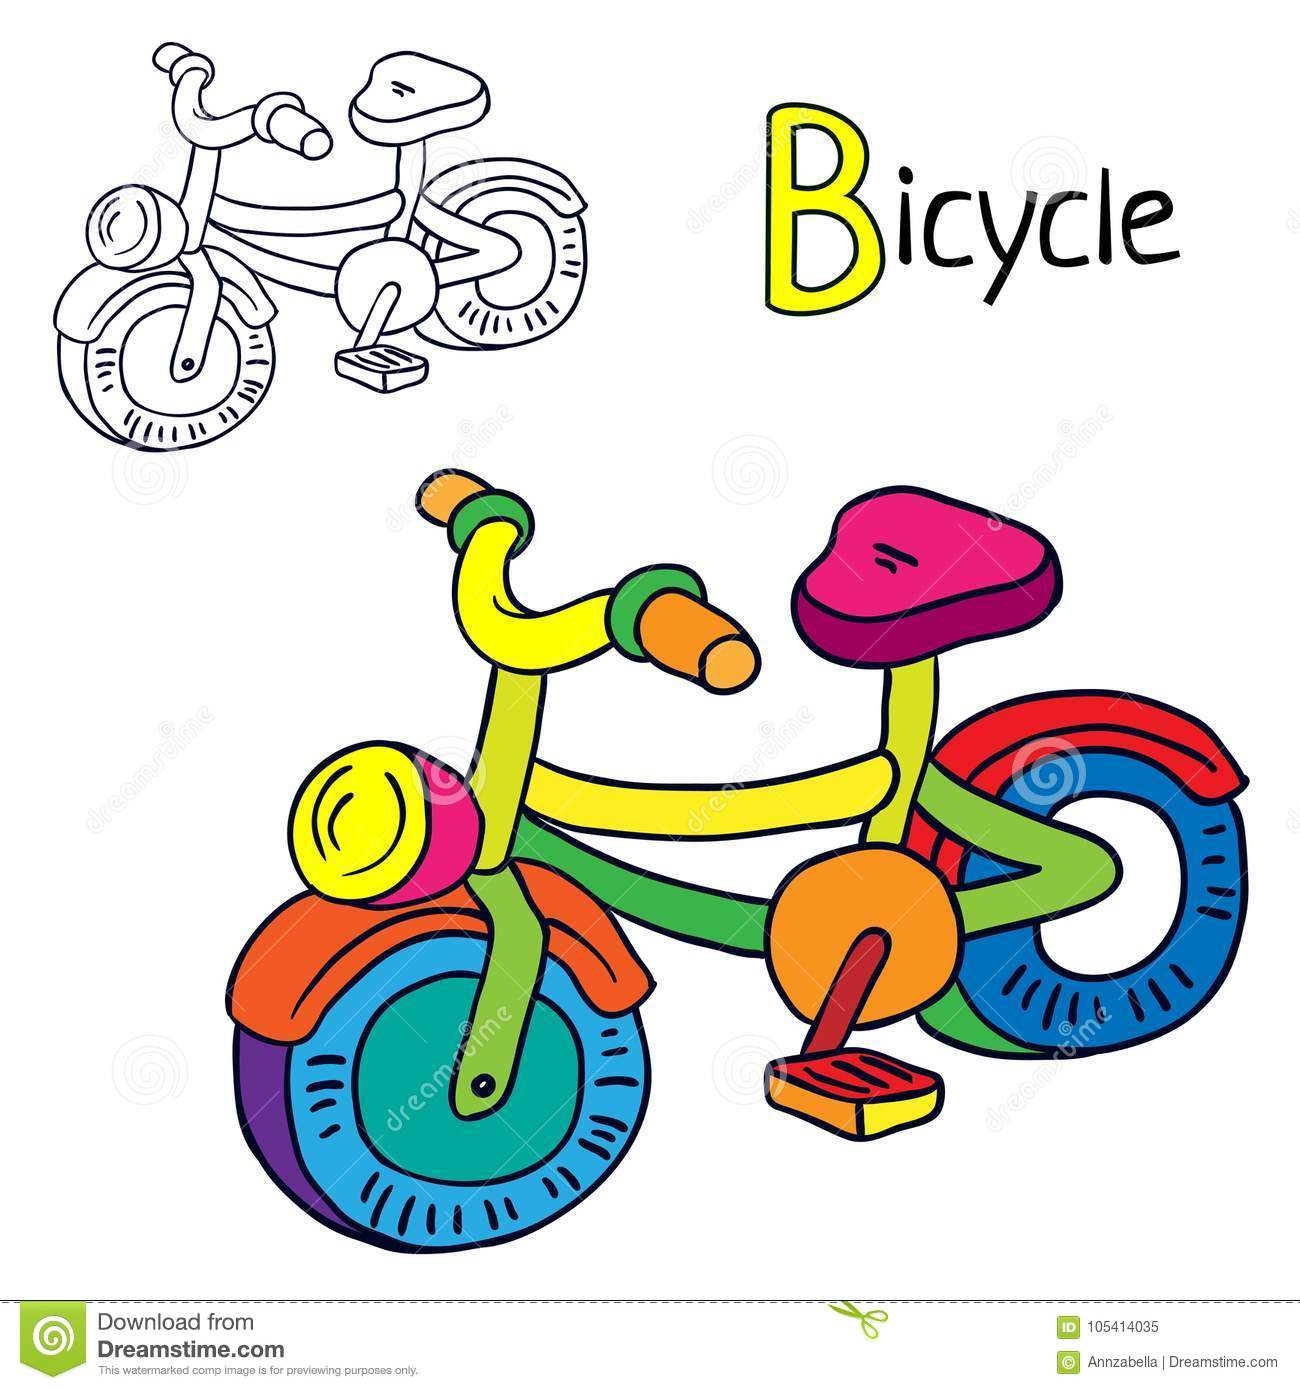 Bike Colouring Book Stock Illustrations 41 Bike Colouring Book Stock Illustrations Vectors Clipart Dreamstime